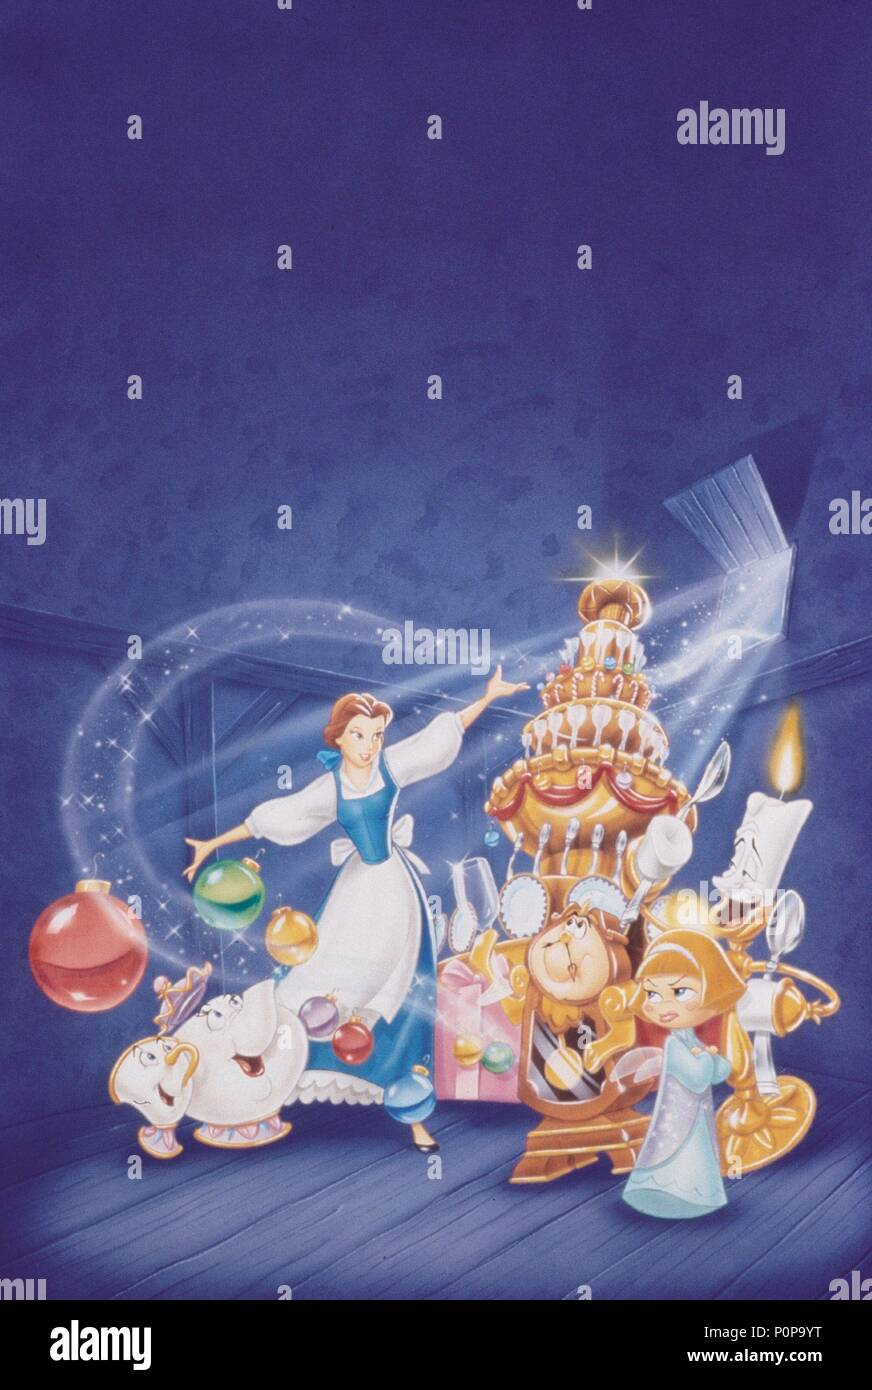 Beauty And The Beast Christmas.Original Film Title Beauty And The Beast The Enchanted